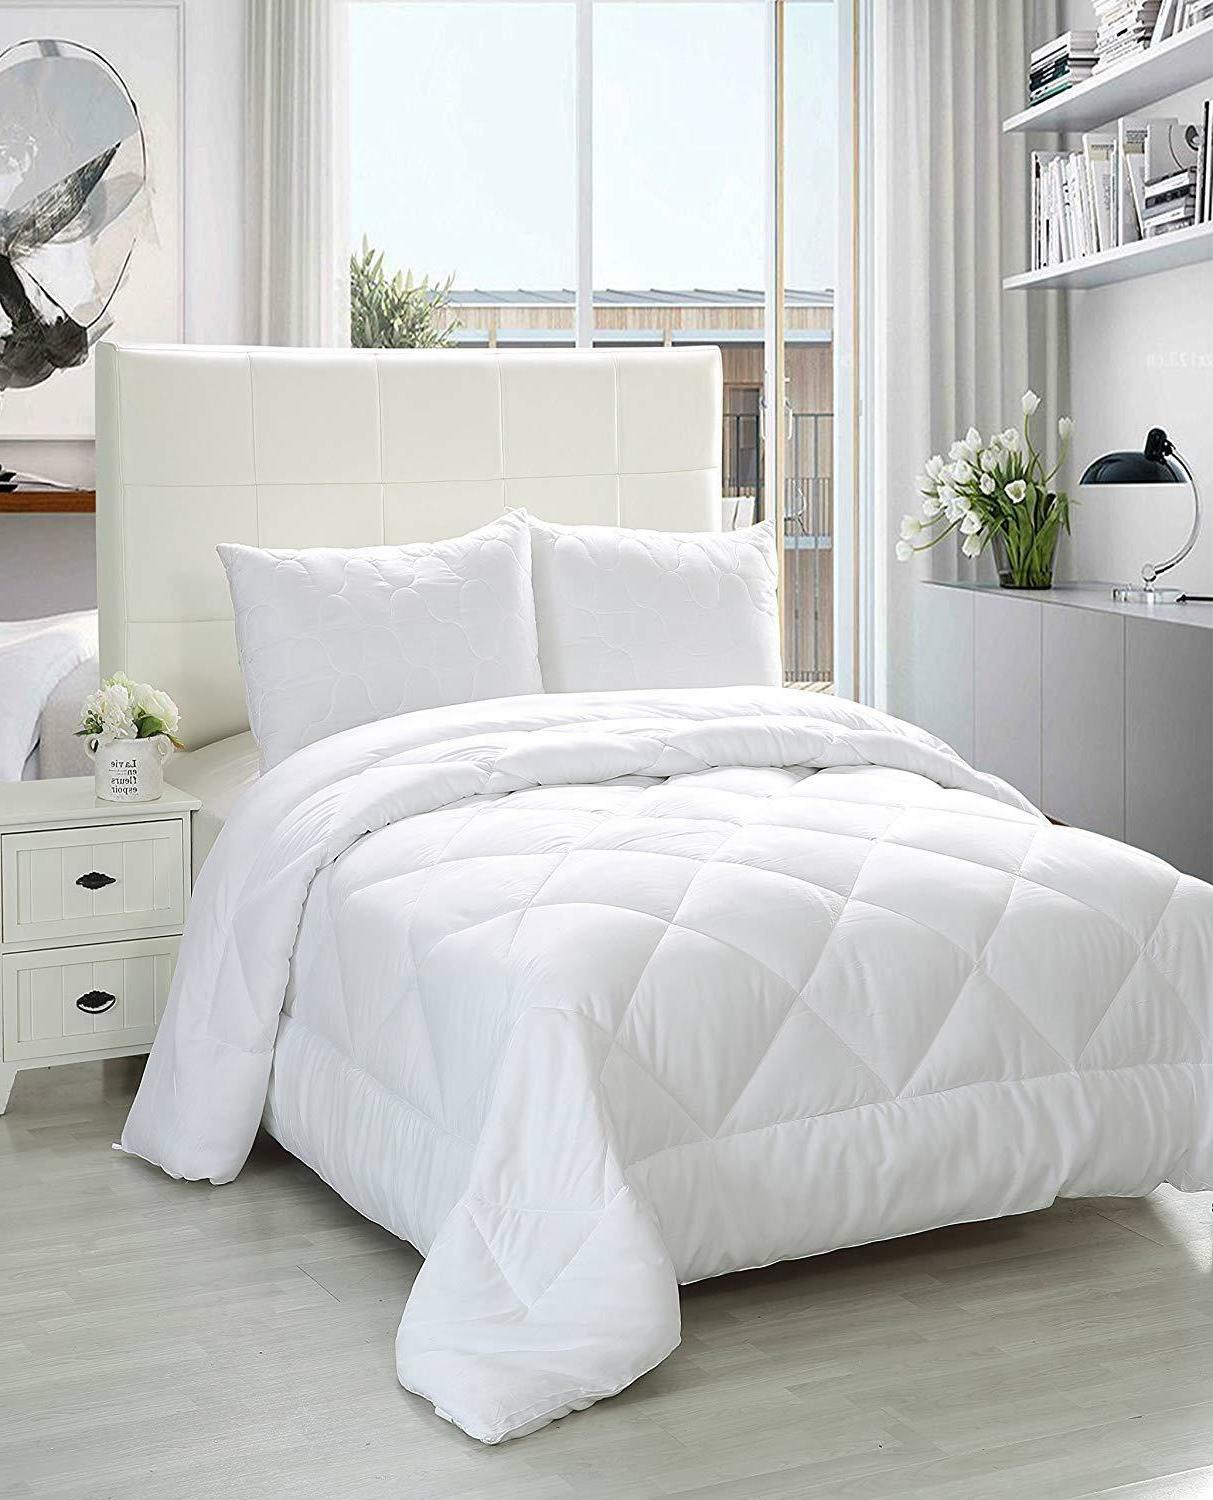 White Queen Size Comforter Duvet Insert Cover Quilted